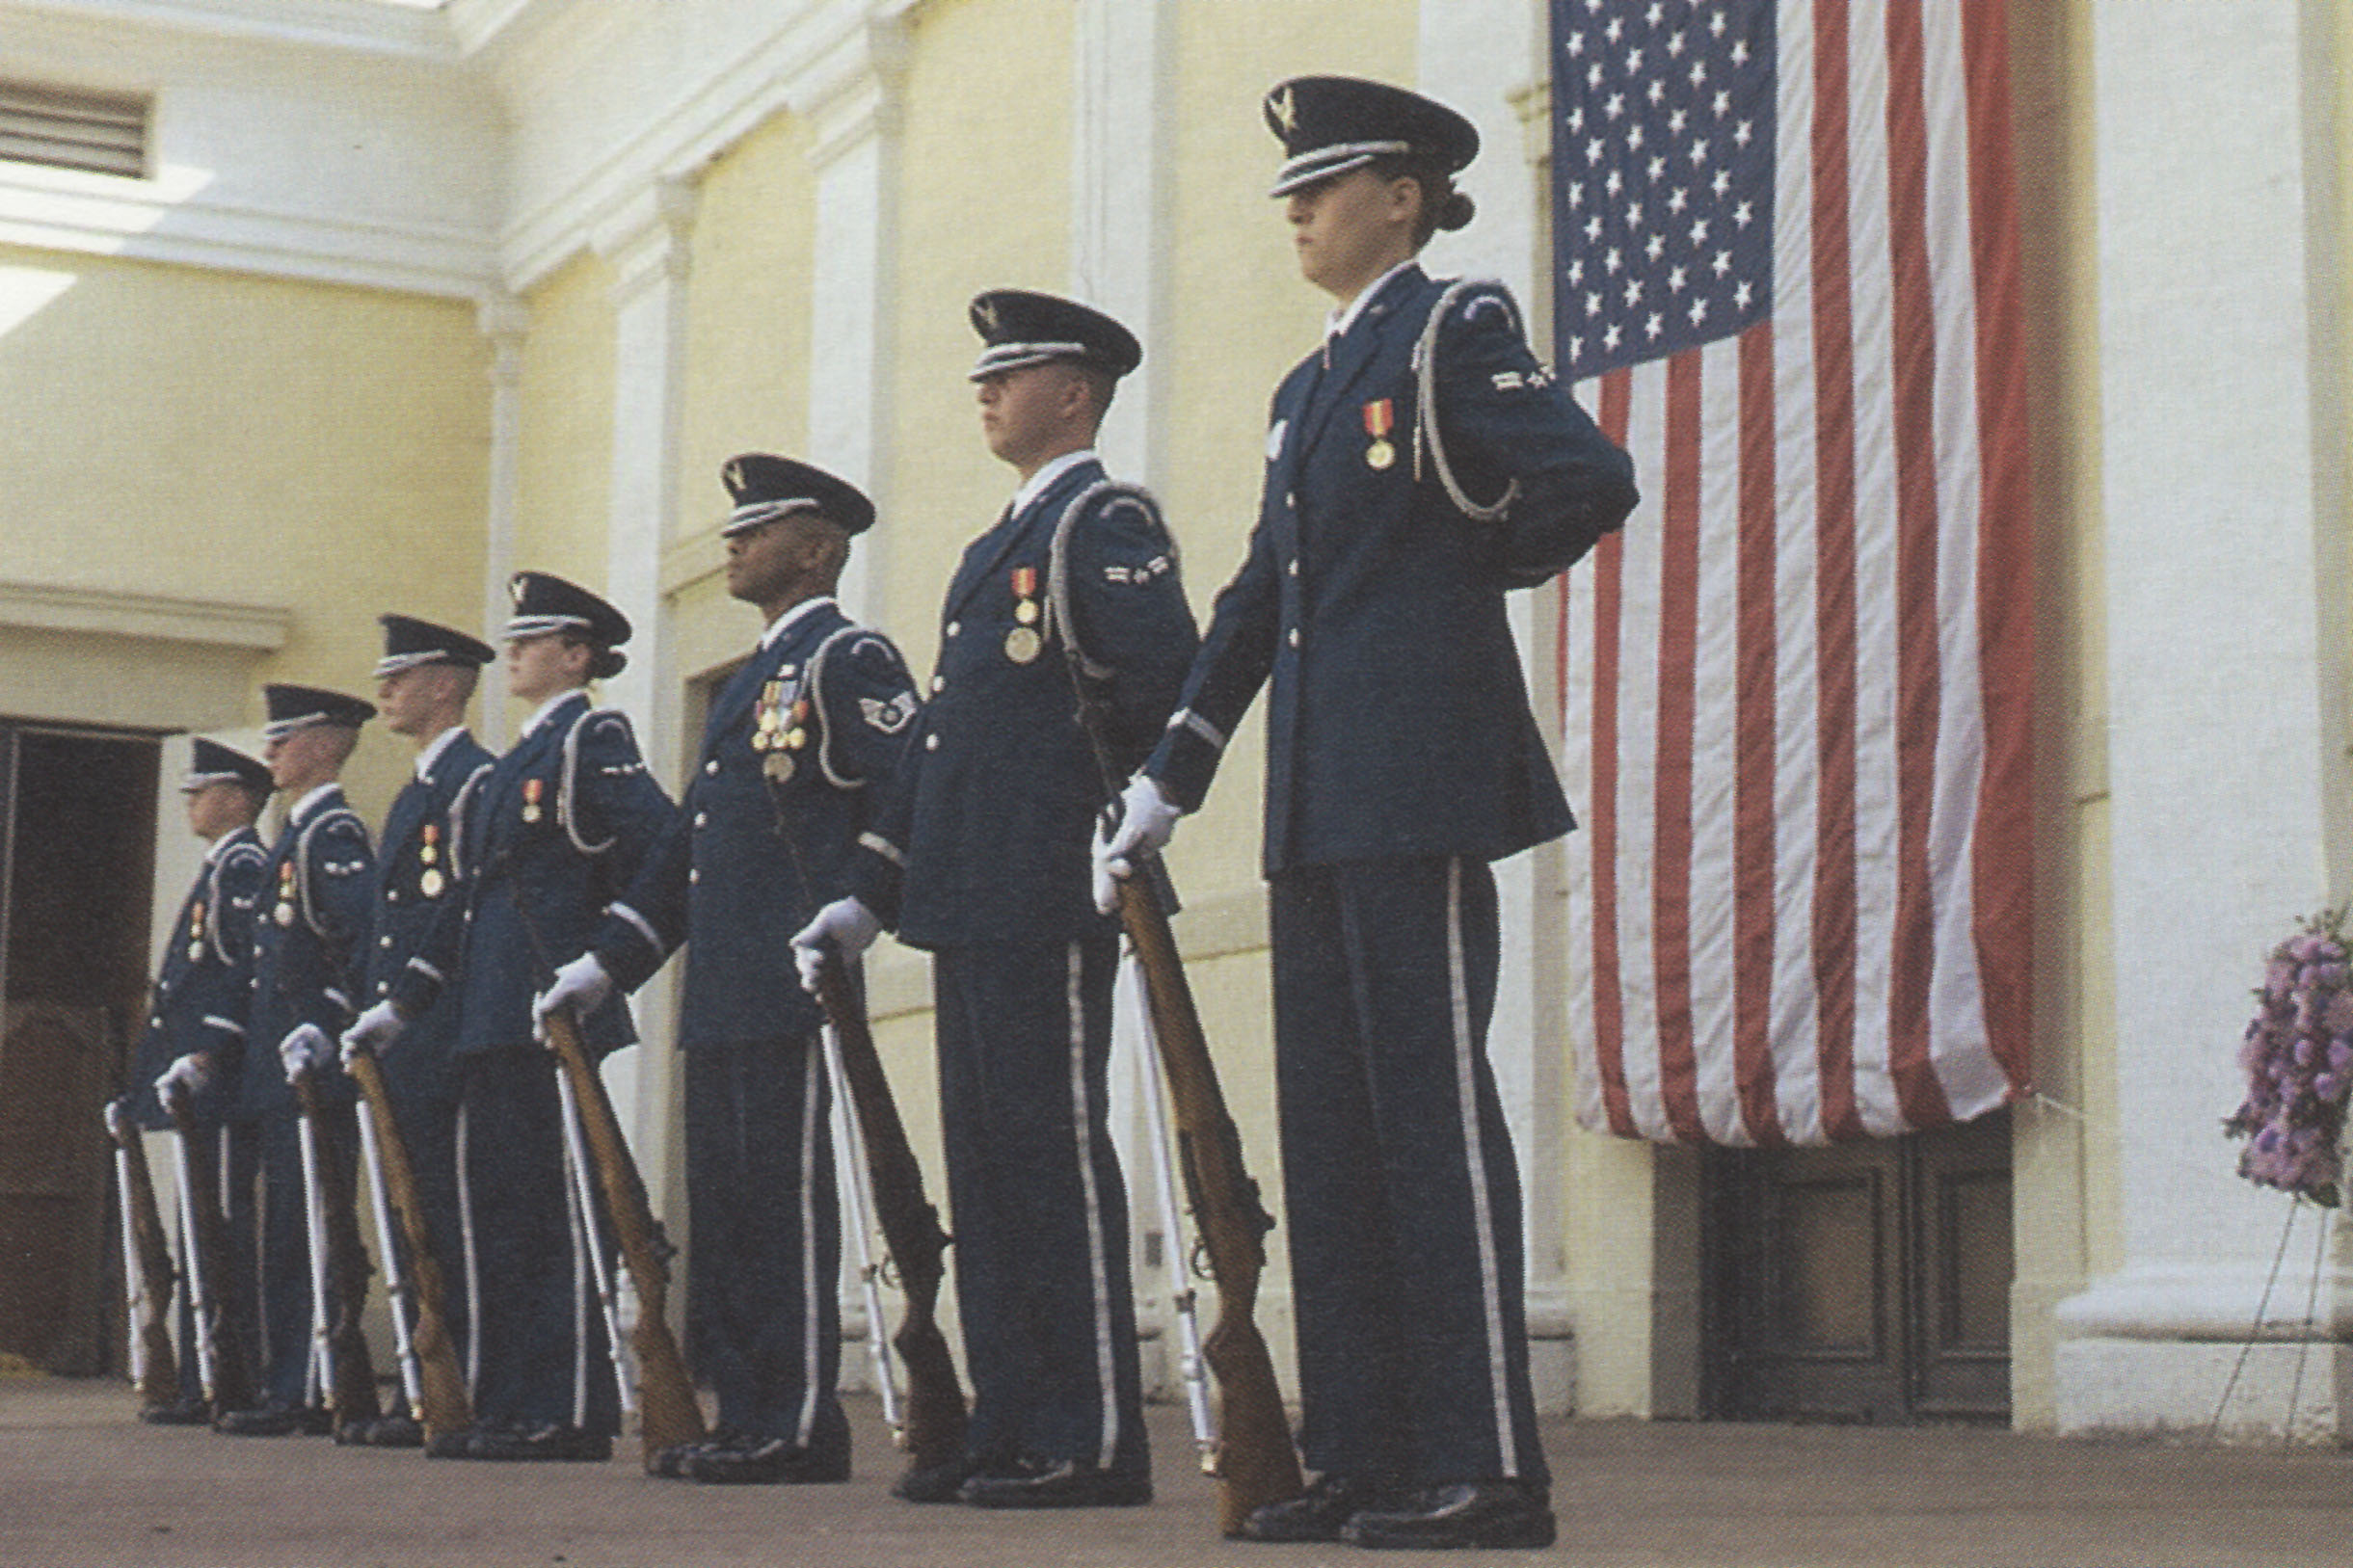 UVA ROTC students during a 2004 memorial service for Khan held on Grounds.